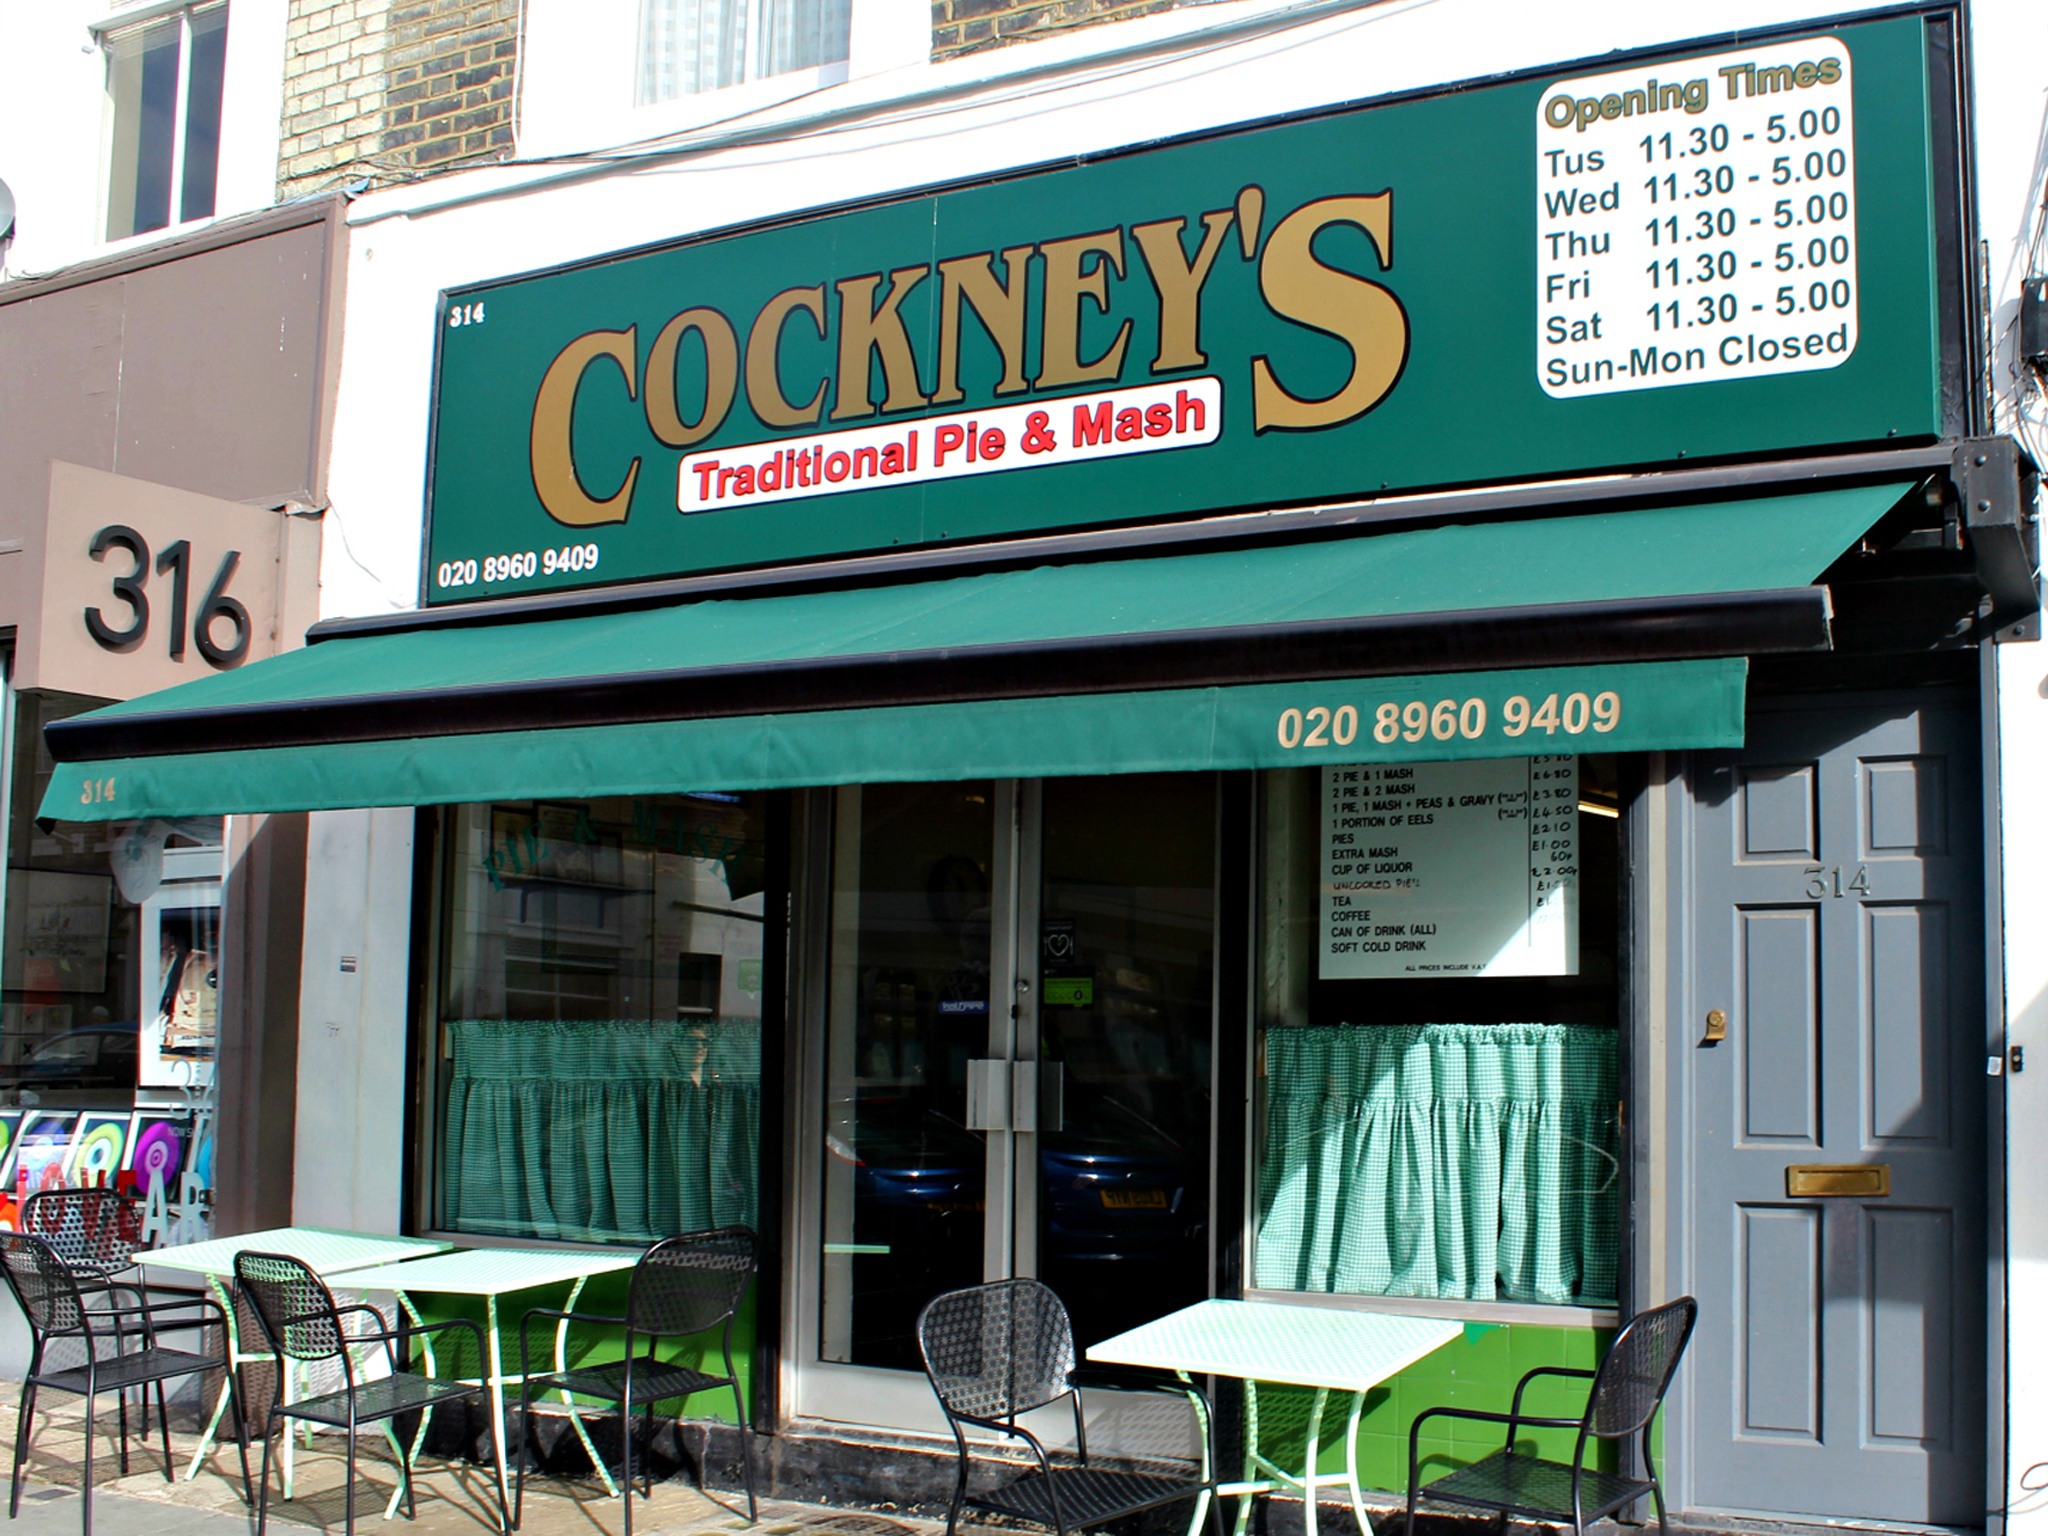 London's best pie & mash shops, Cockney's pie & mash